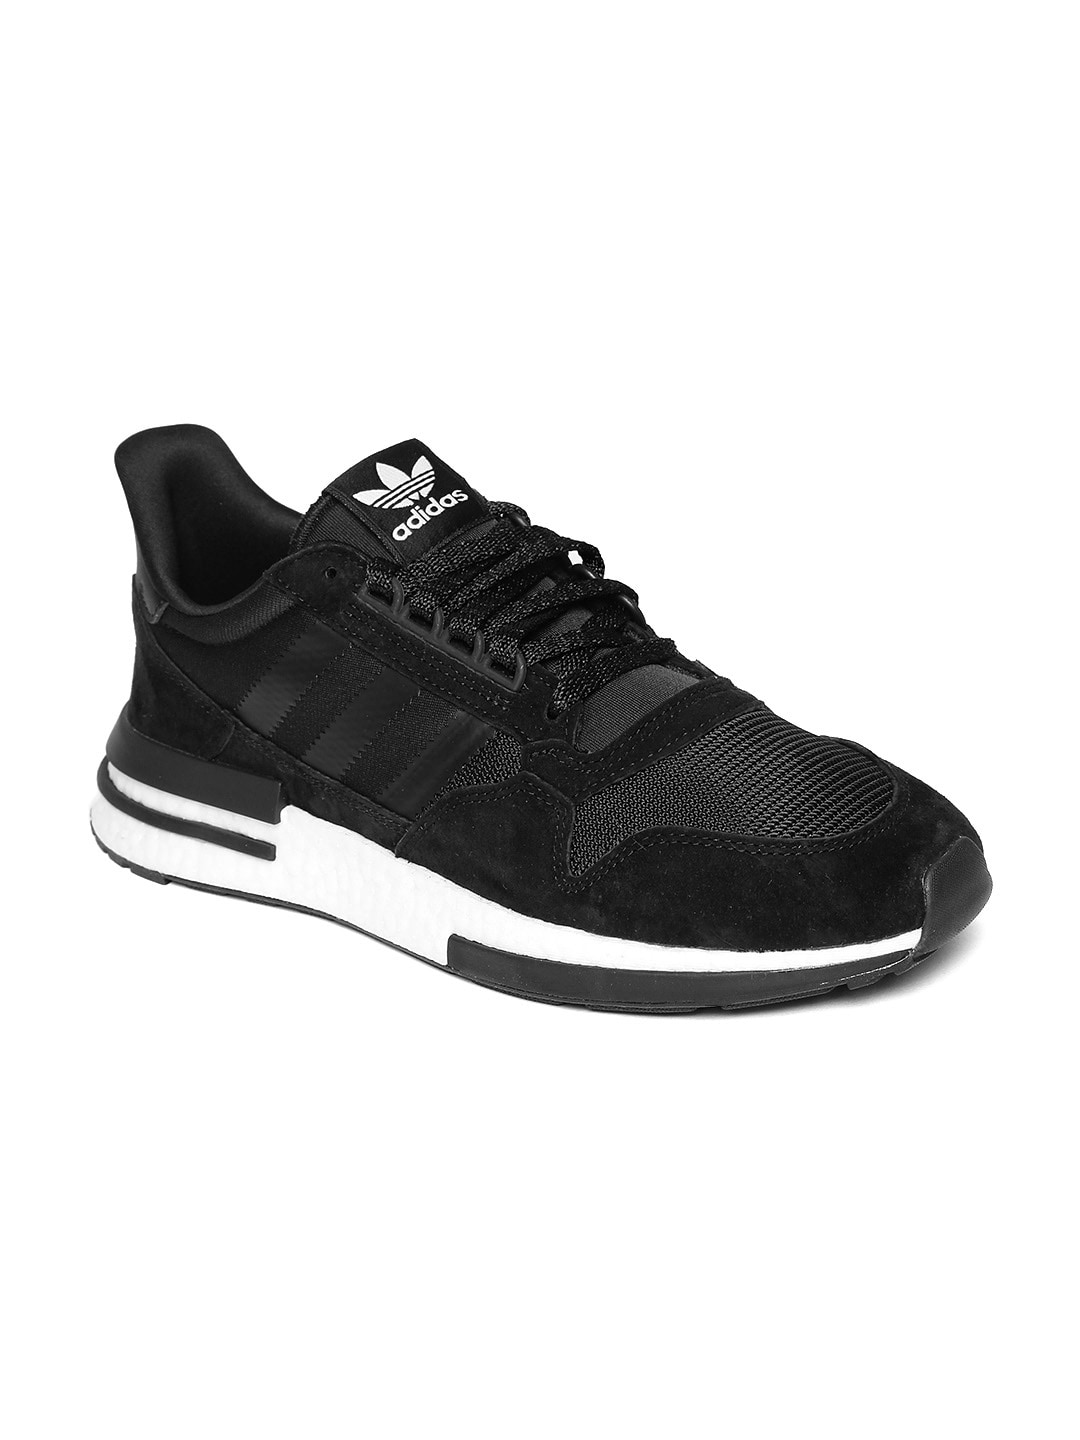 dc40b4c44 Adidas Shoes - Buy Adidas Shoes for Men   Women Online - Myntra